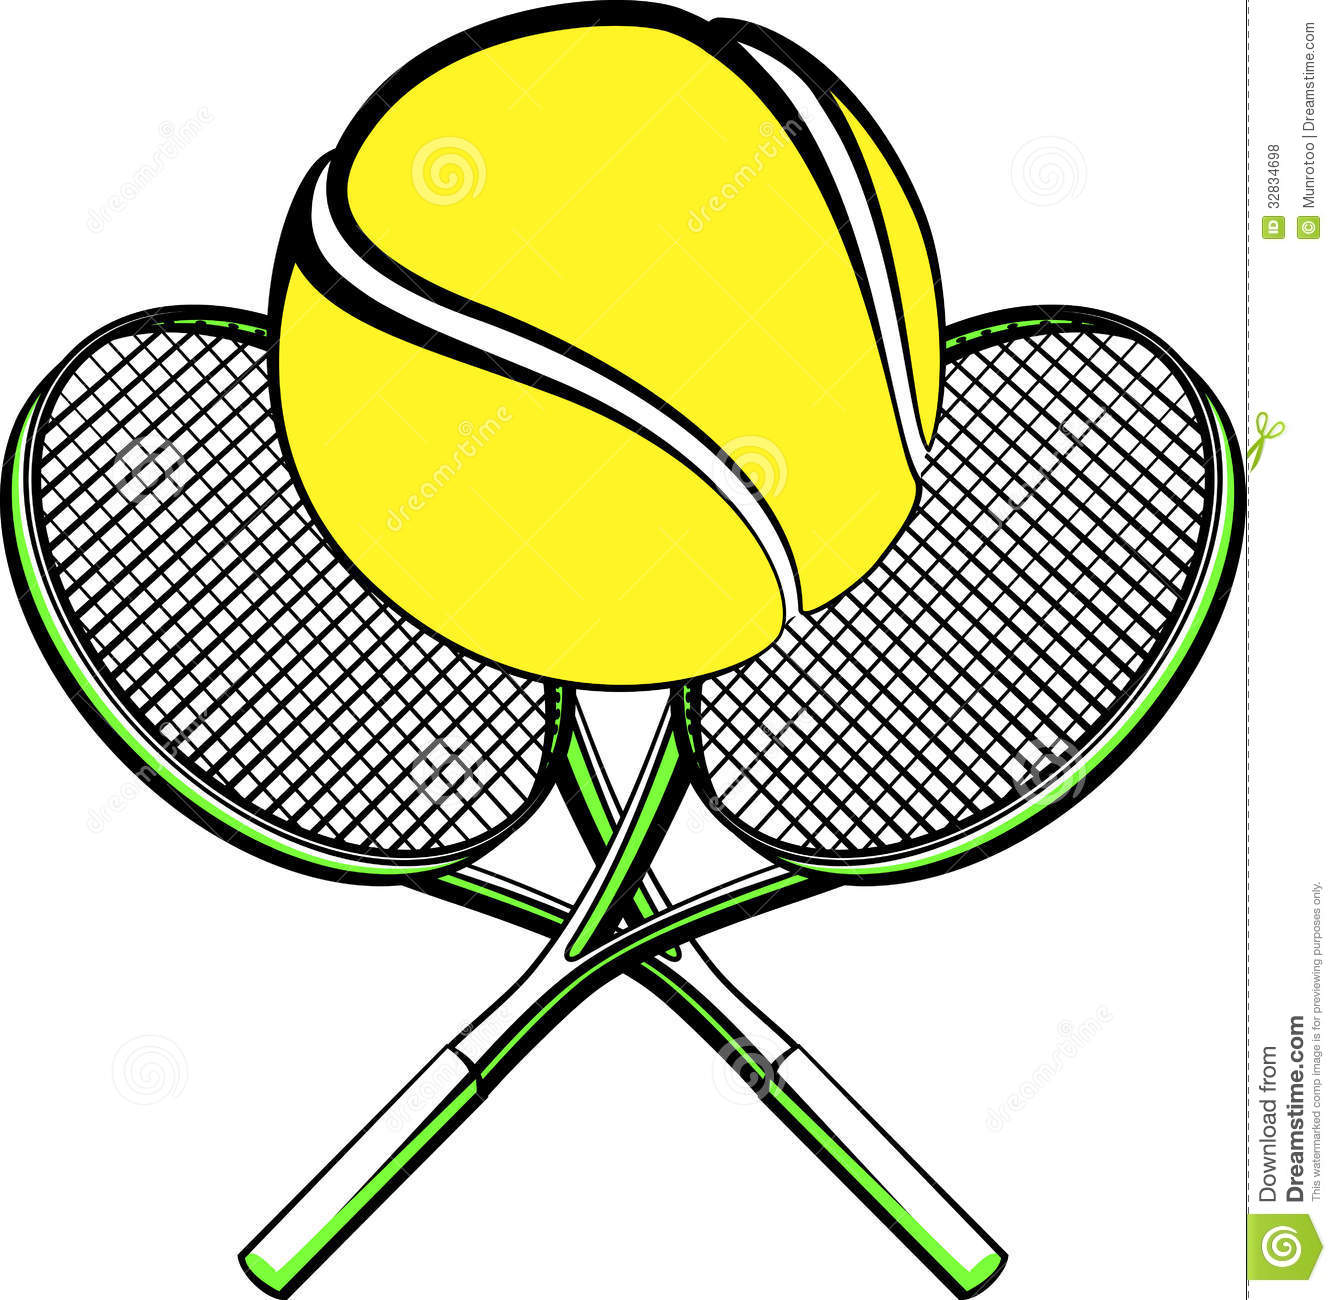 Tennis Ball And Racket Clip Art   Clipart Panda   Free Clipart Images